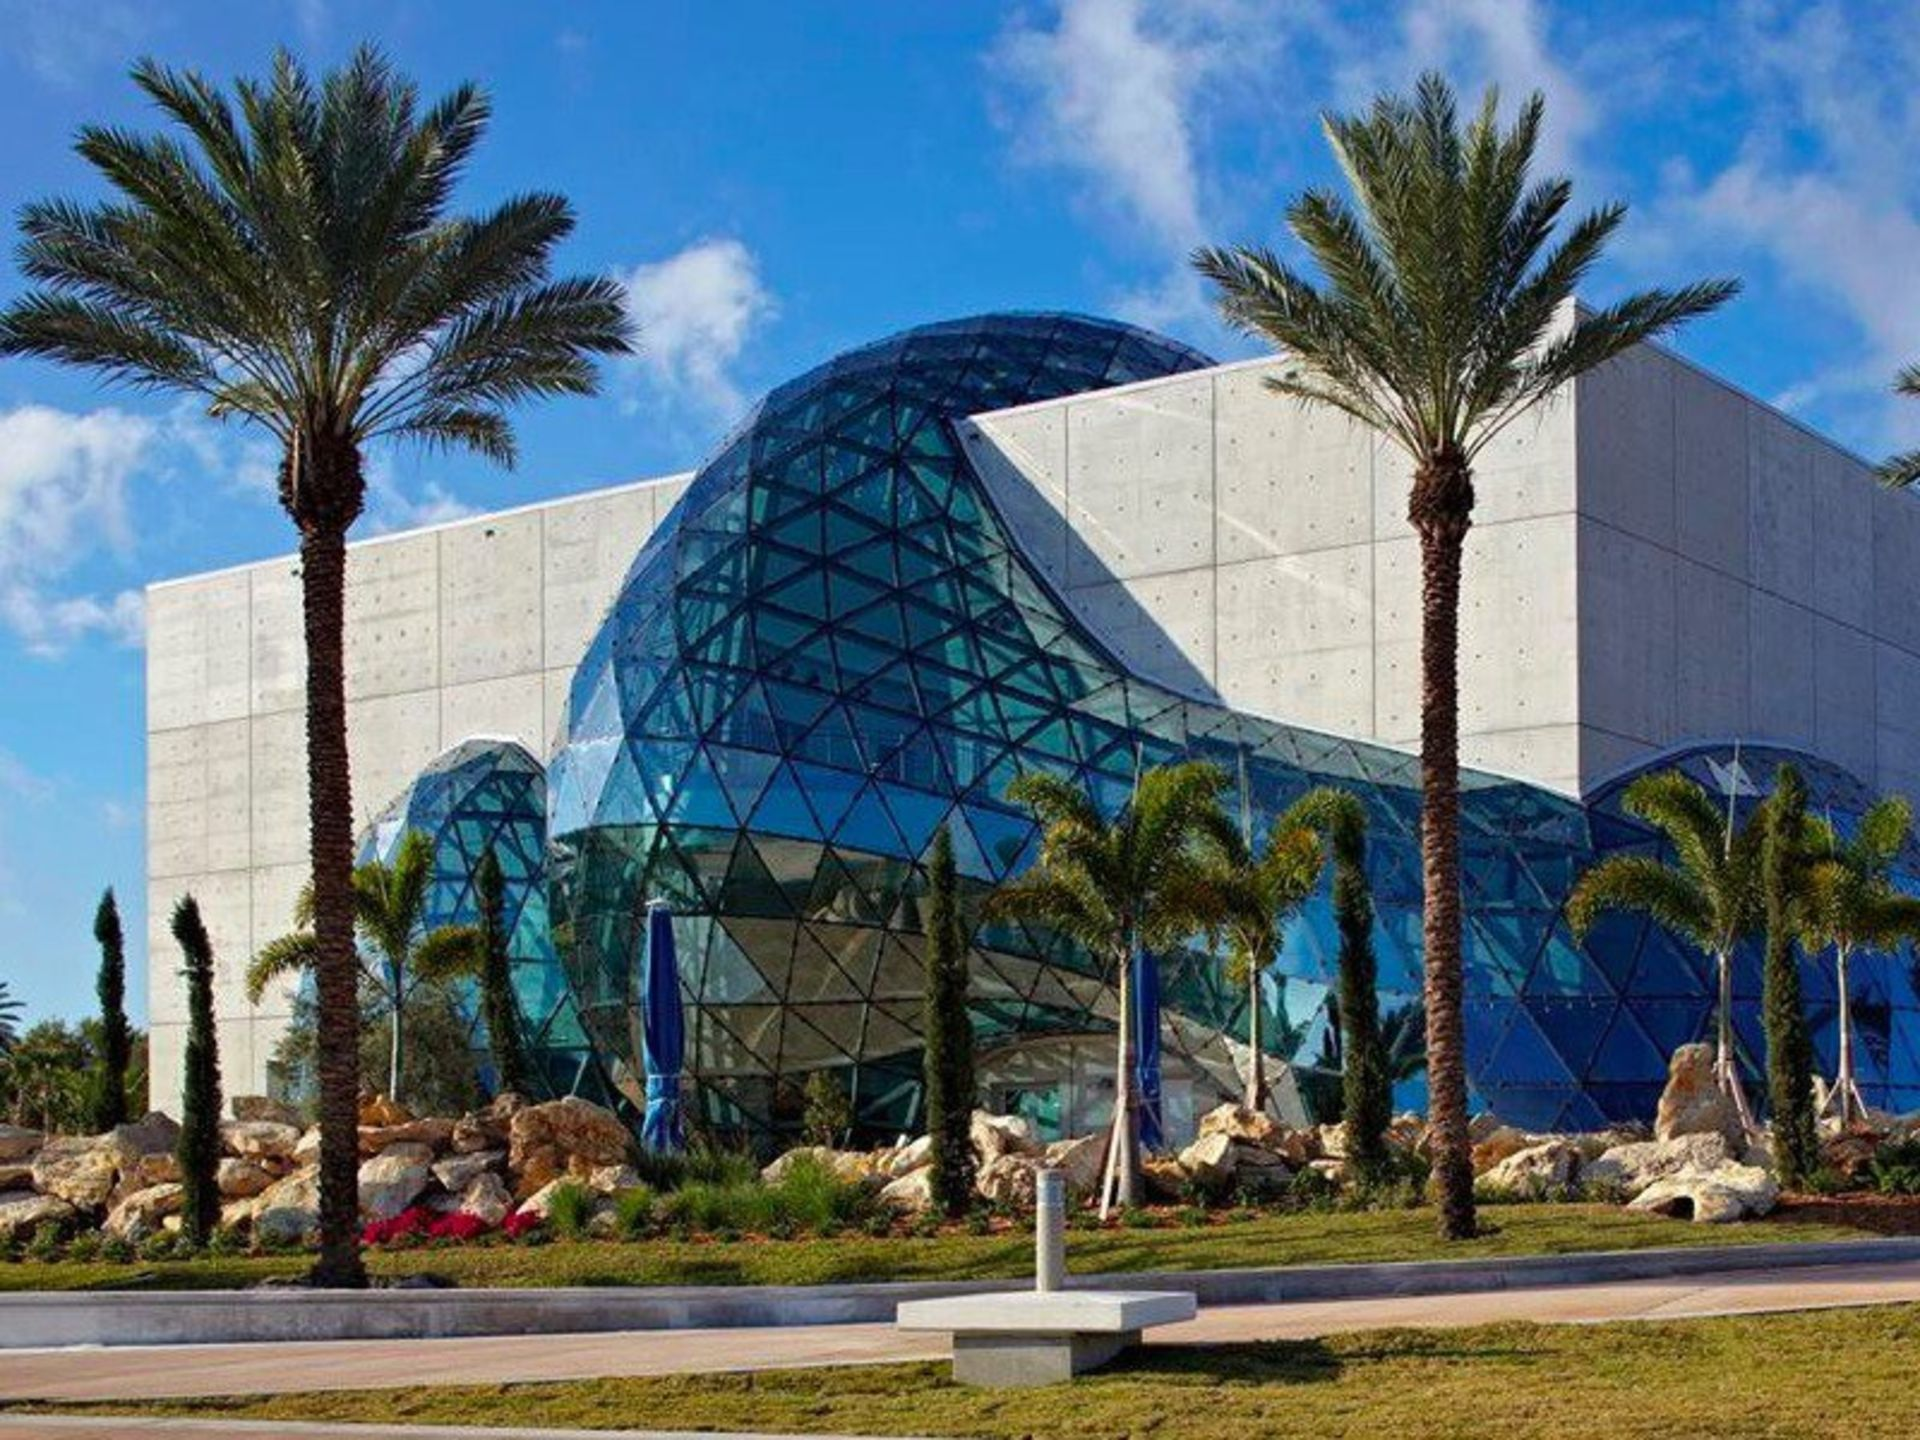 10 Museums Worth Visiting in St. Petersburg-Clearwater, FL